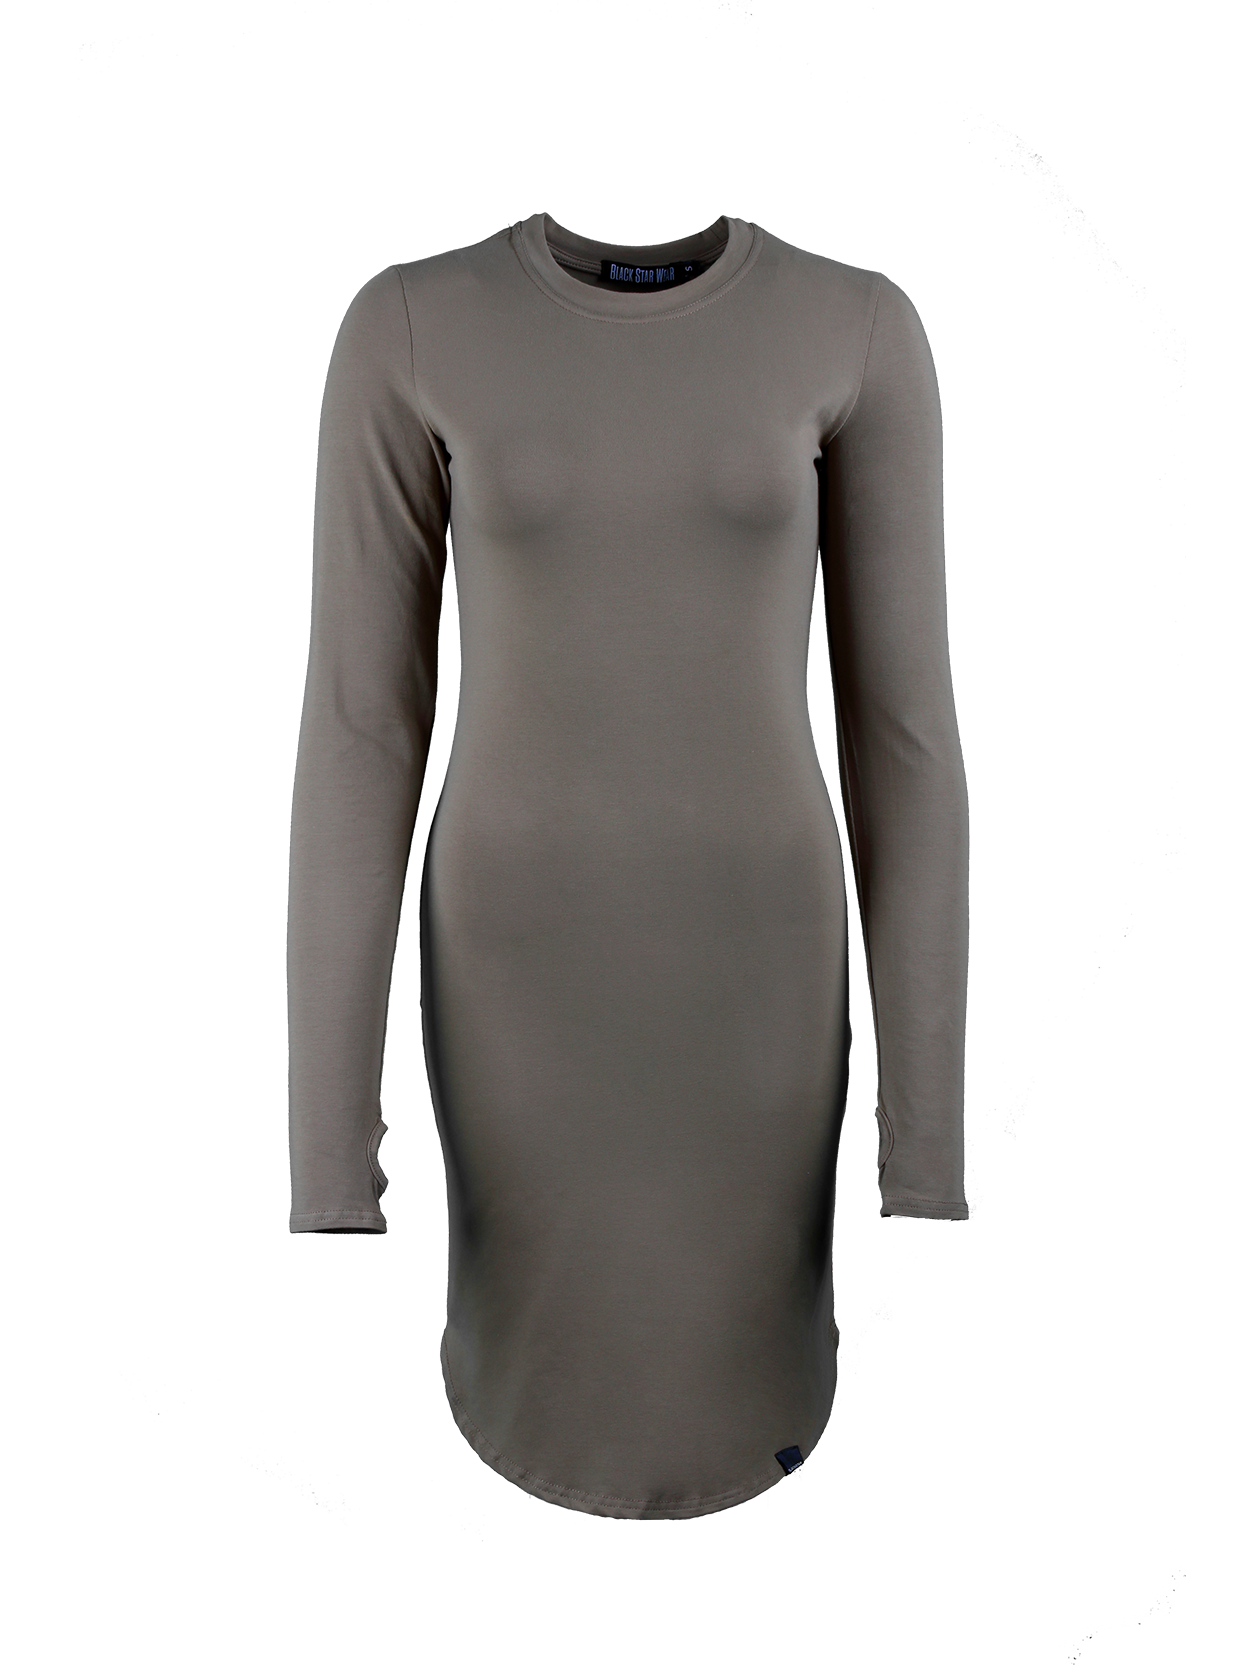 Womens dress TeaseWomens dress by Black Star Wear. Straight fit, o-neck, lond sleeves with a thumb hole. Assimetrical round cut. Small black label with #blackstar on the front. Natural cotton (95%) and lycra (5%) blend. Avaliable in red and khaki.<br><br>size: L<br>color: Khaki<br>gender: female